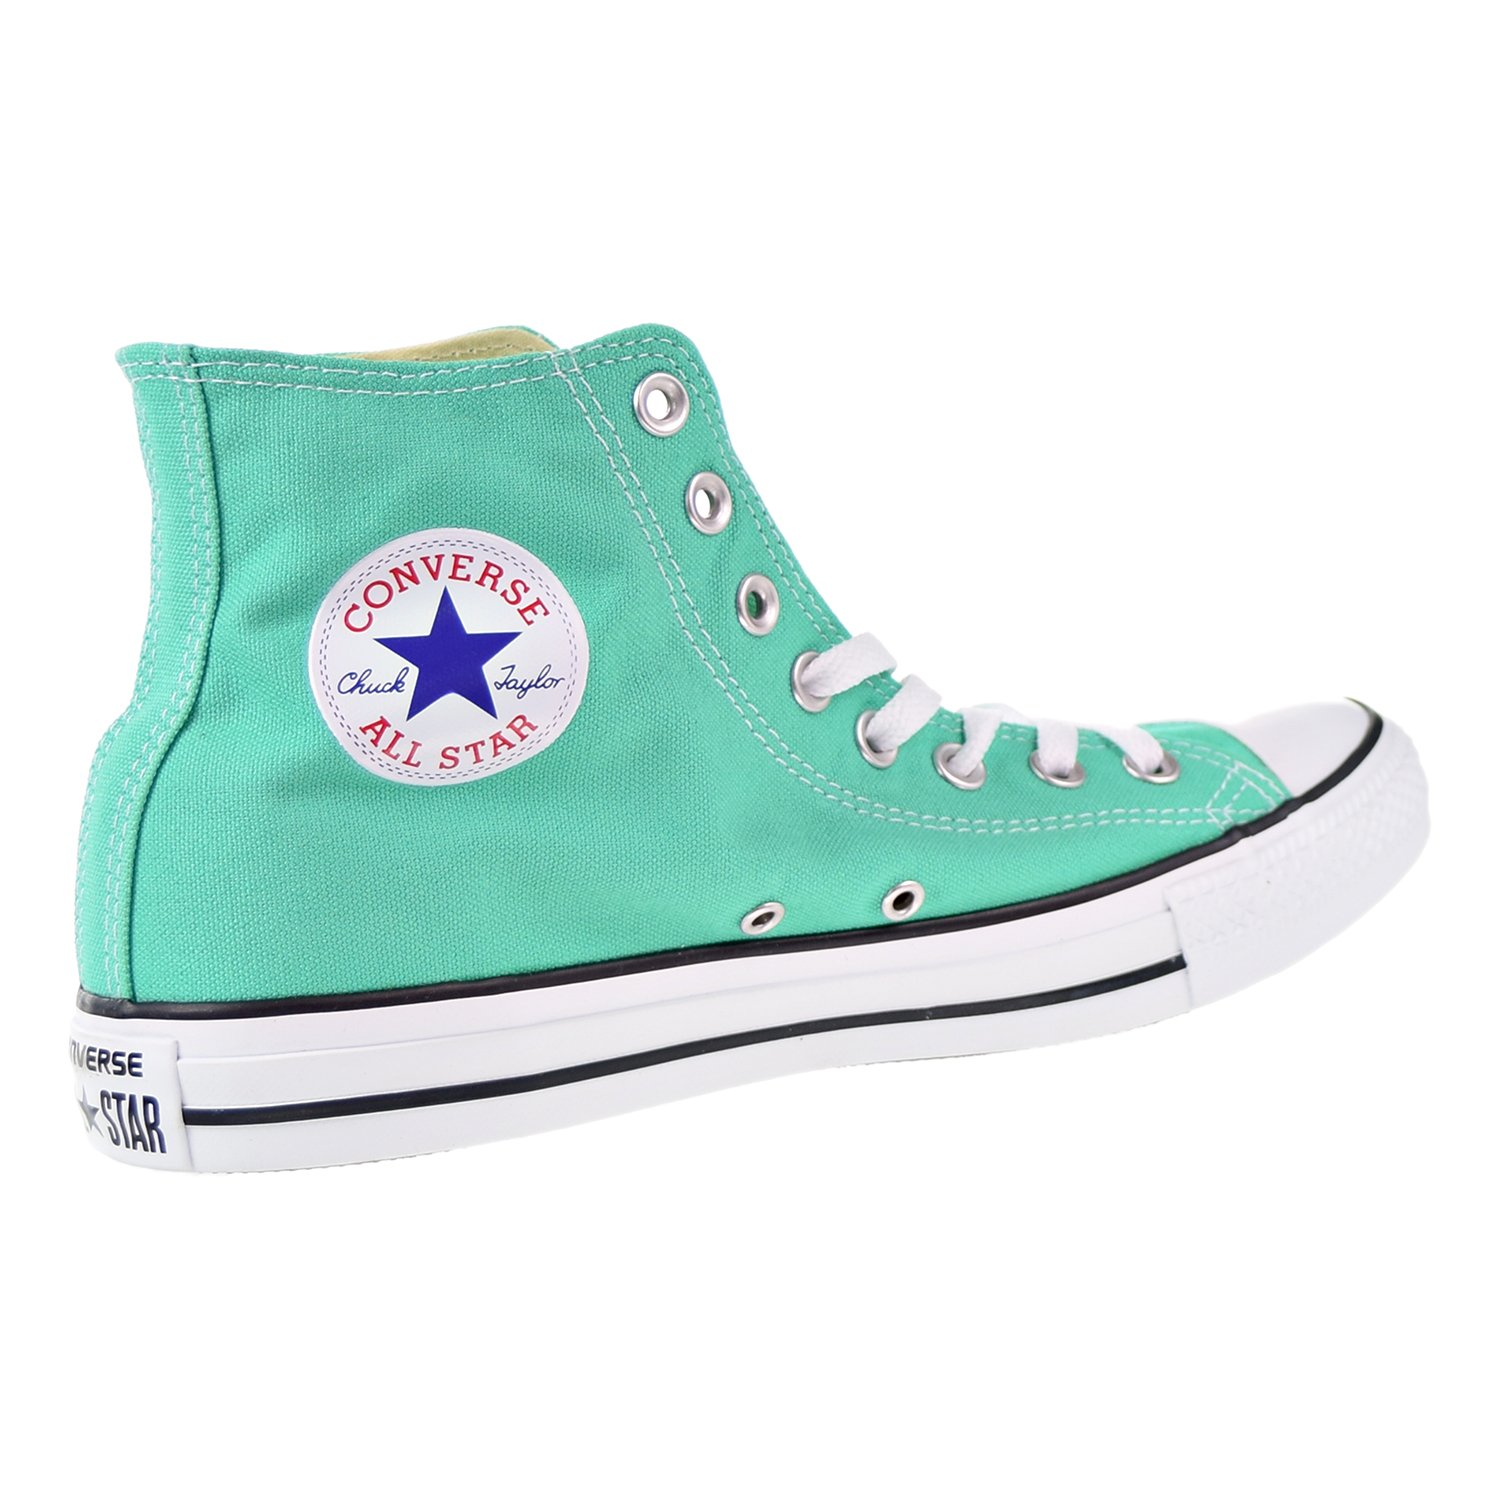 Converse Unisex Chuck Taylor All-Star High-Top Casual Sneakers Color in Classic Style and Color Sneakers and Durable Canvas Uppers B01HSH9BZC 6 B(M) US Women / 4 D(M) US Men|Menta d865fc